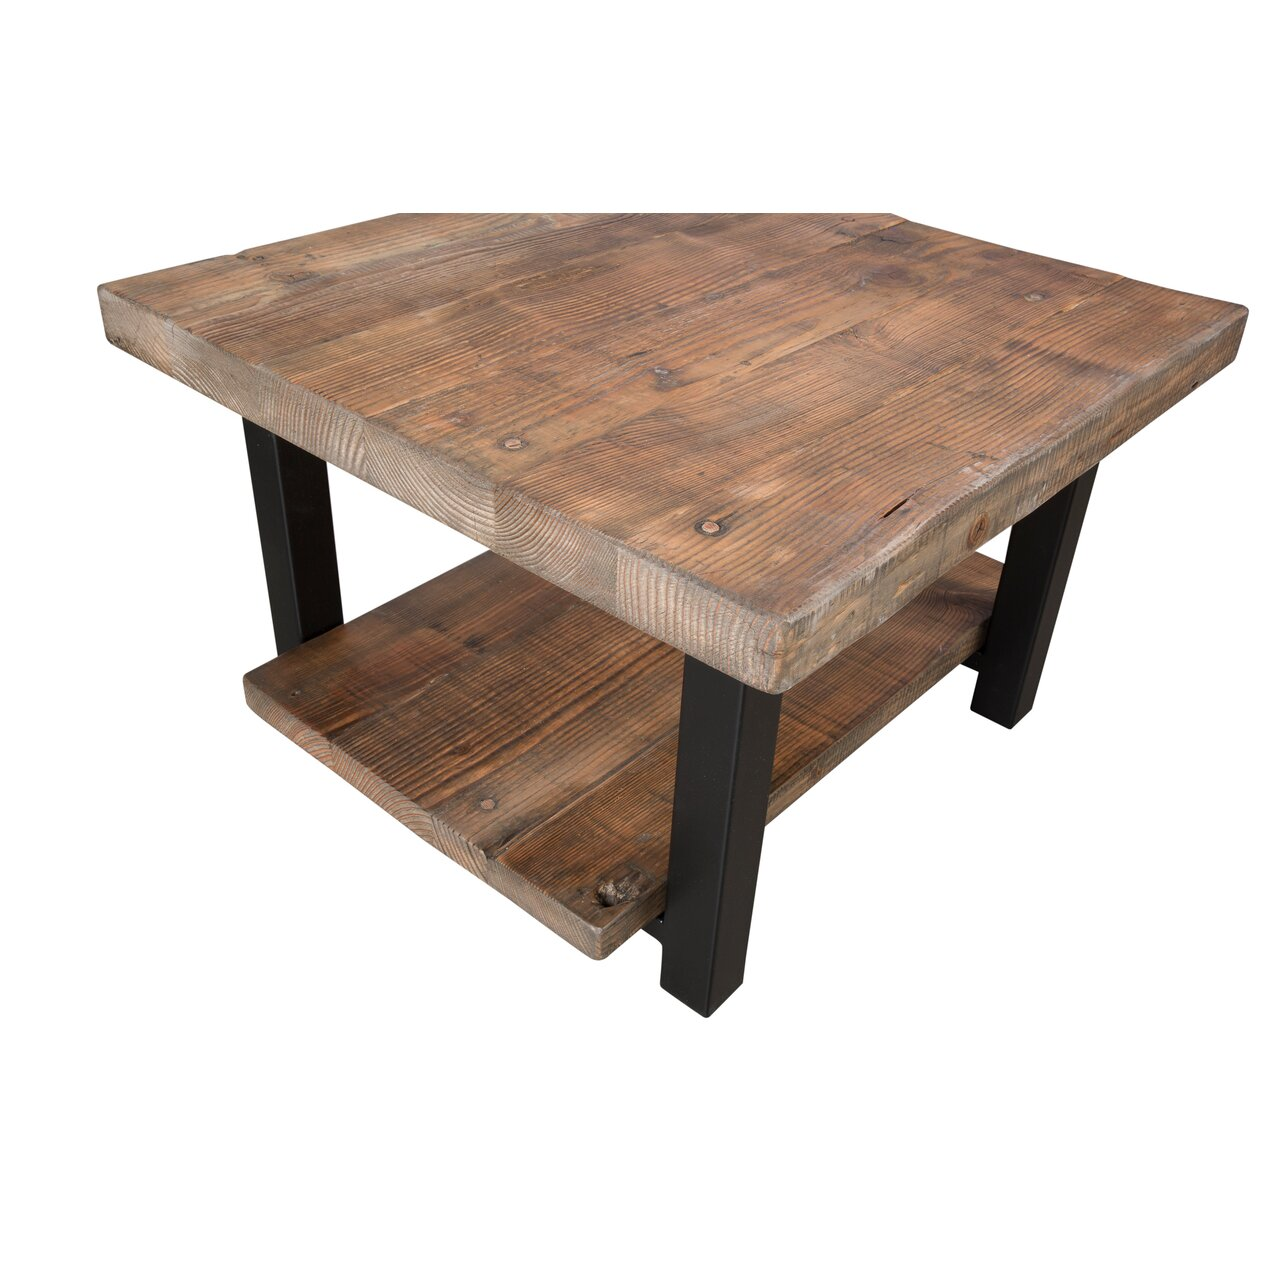 Somers 27 Reclaimed Wood Square Coffee Table